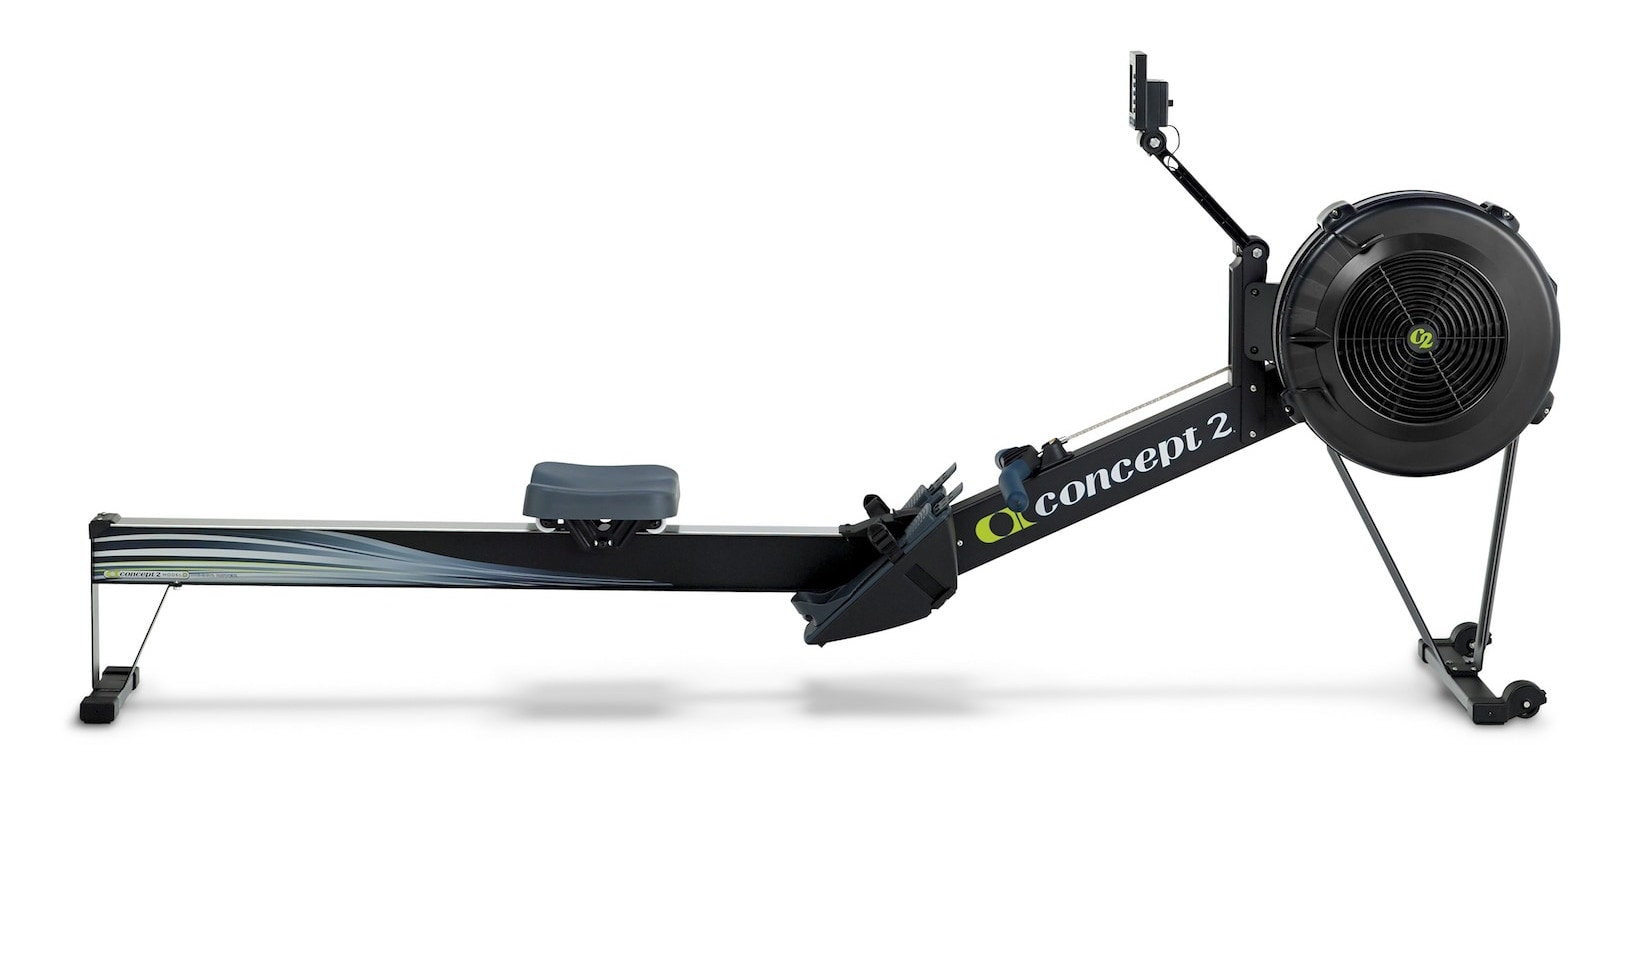 concept 2 indoor rower rowing machine model d with pm5 concept2 286